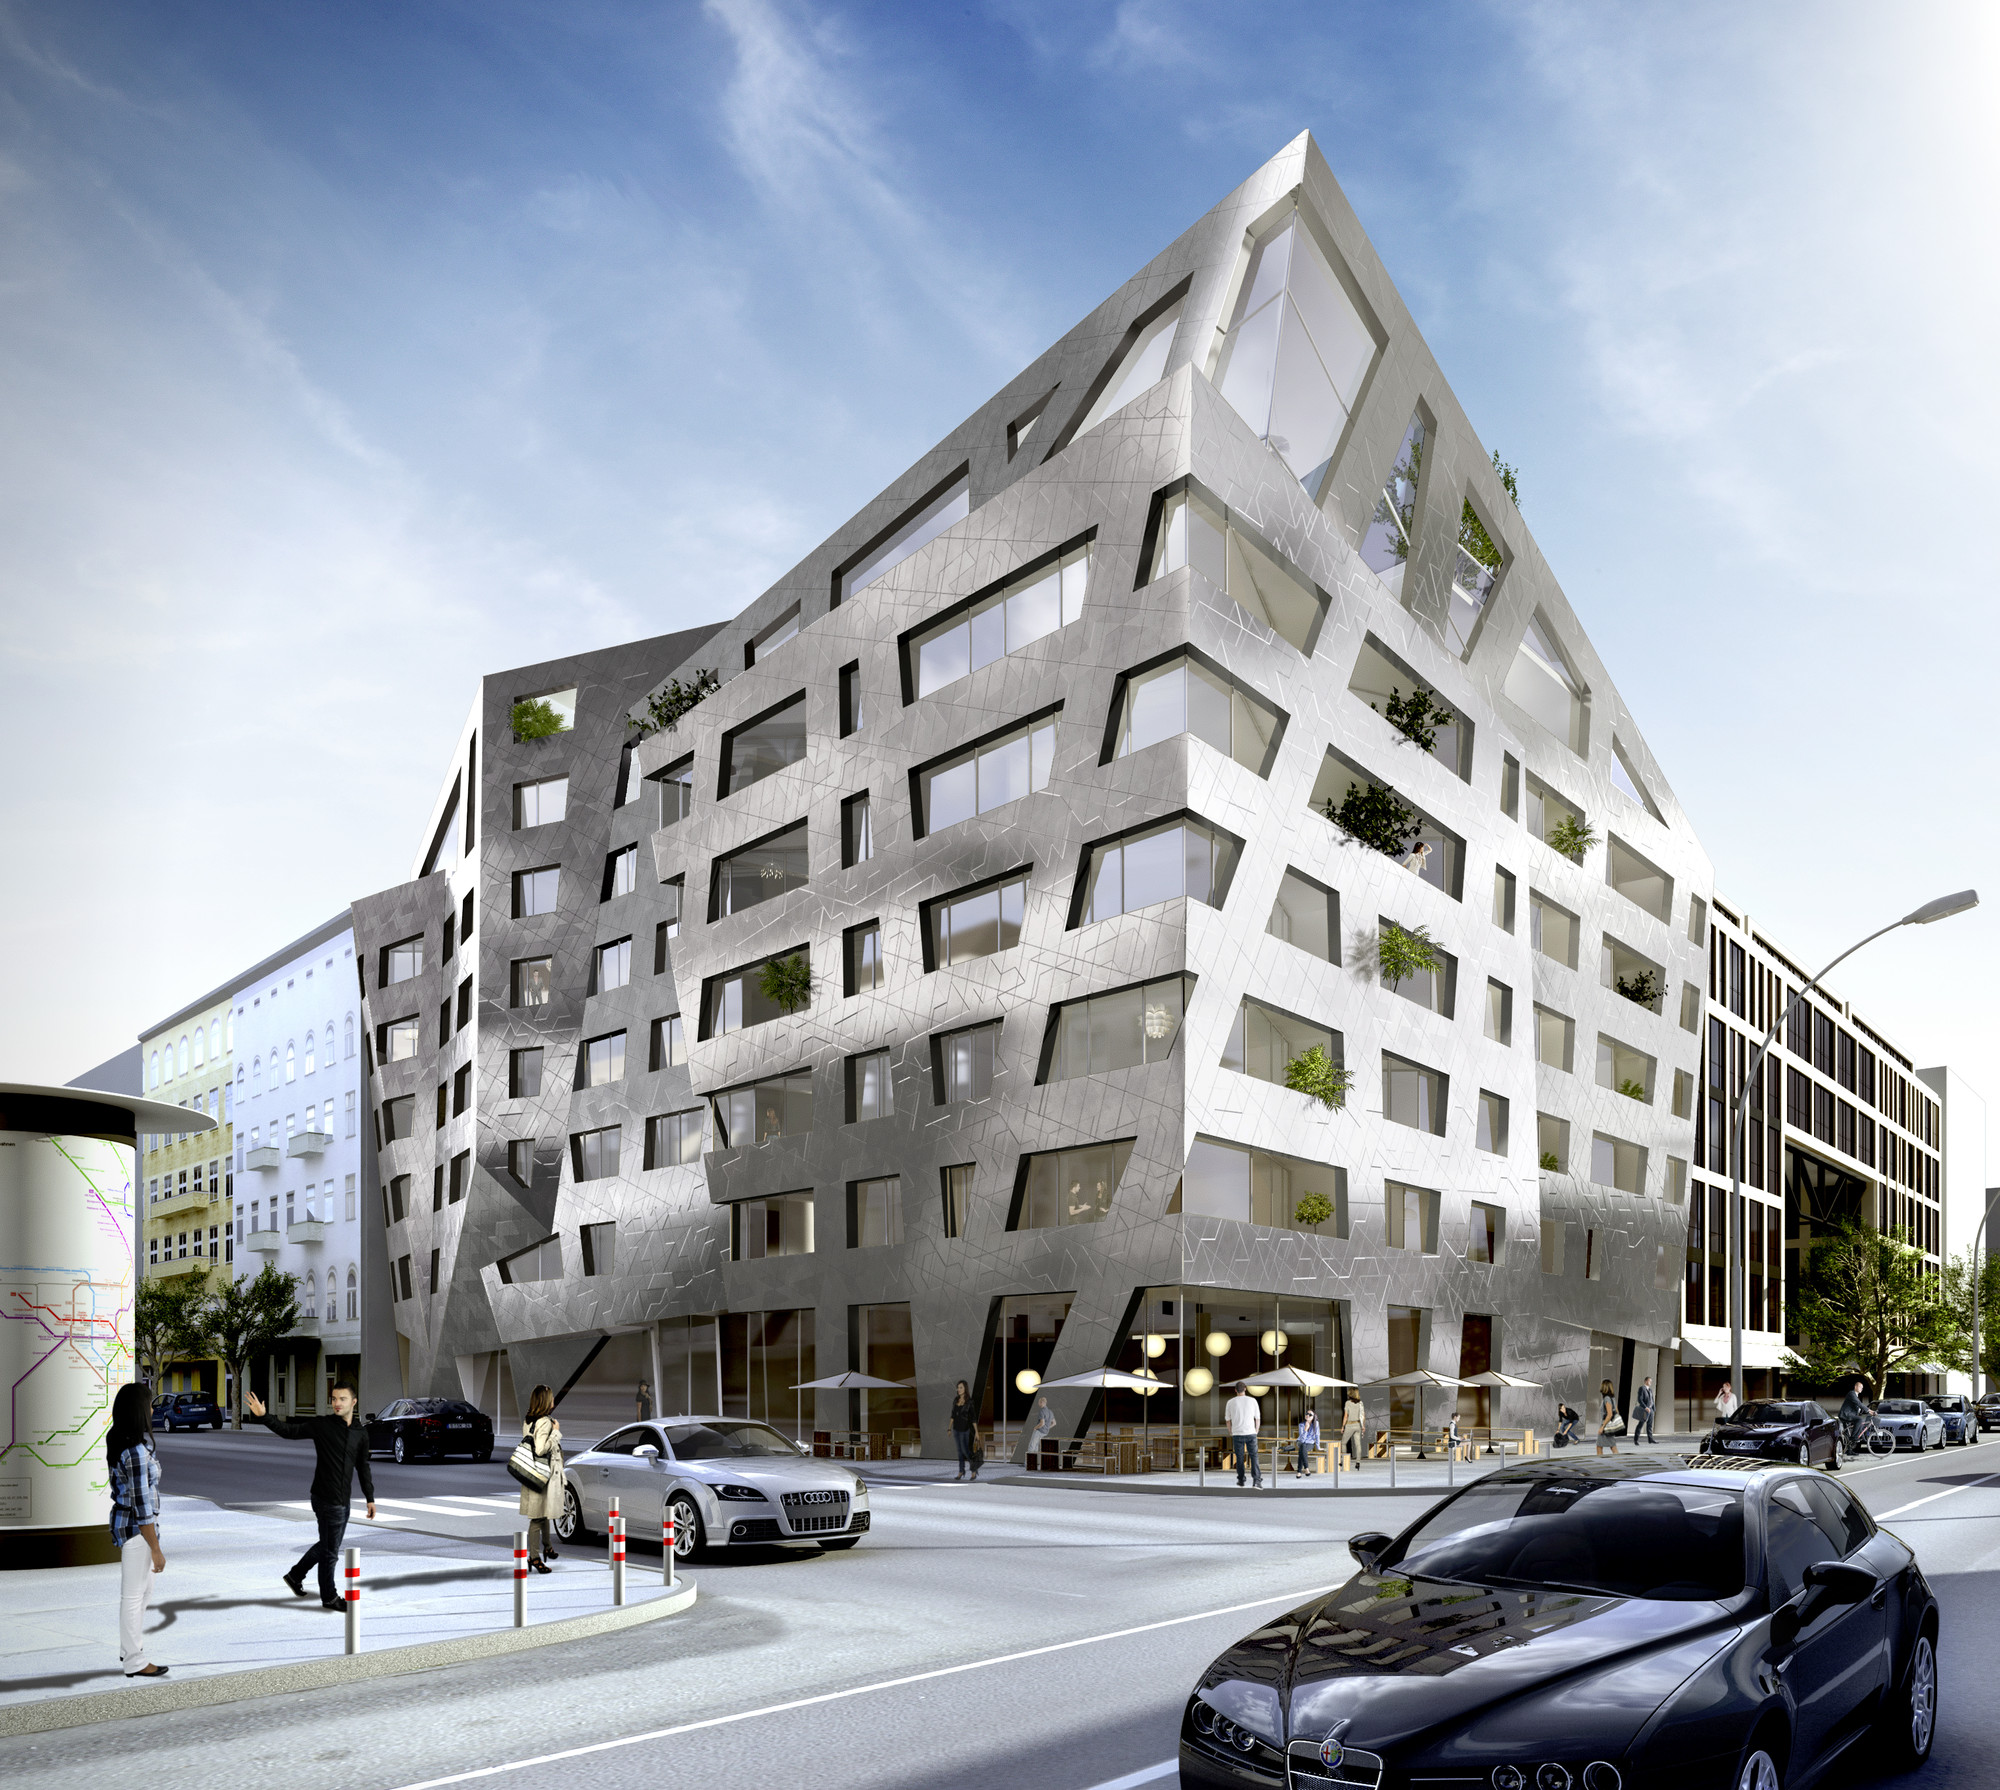 Daniel libeskind designs apartment building for berlin for Apartment building design ideas